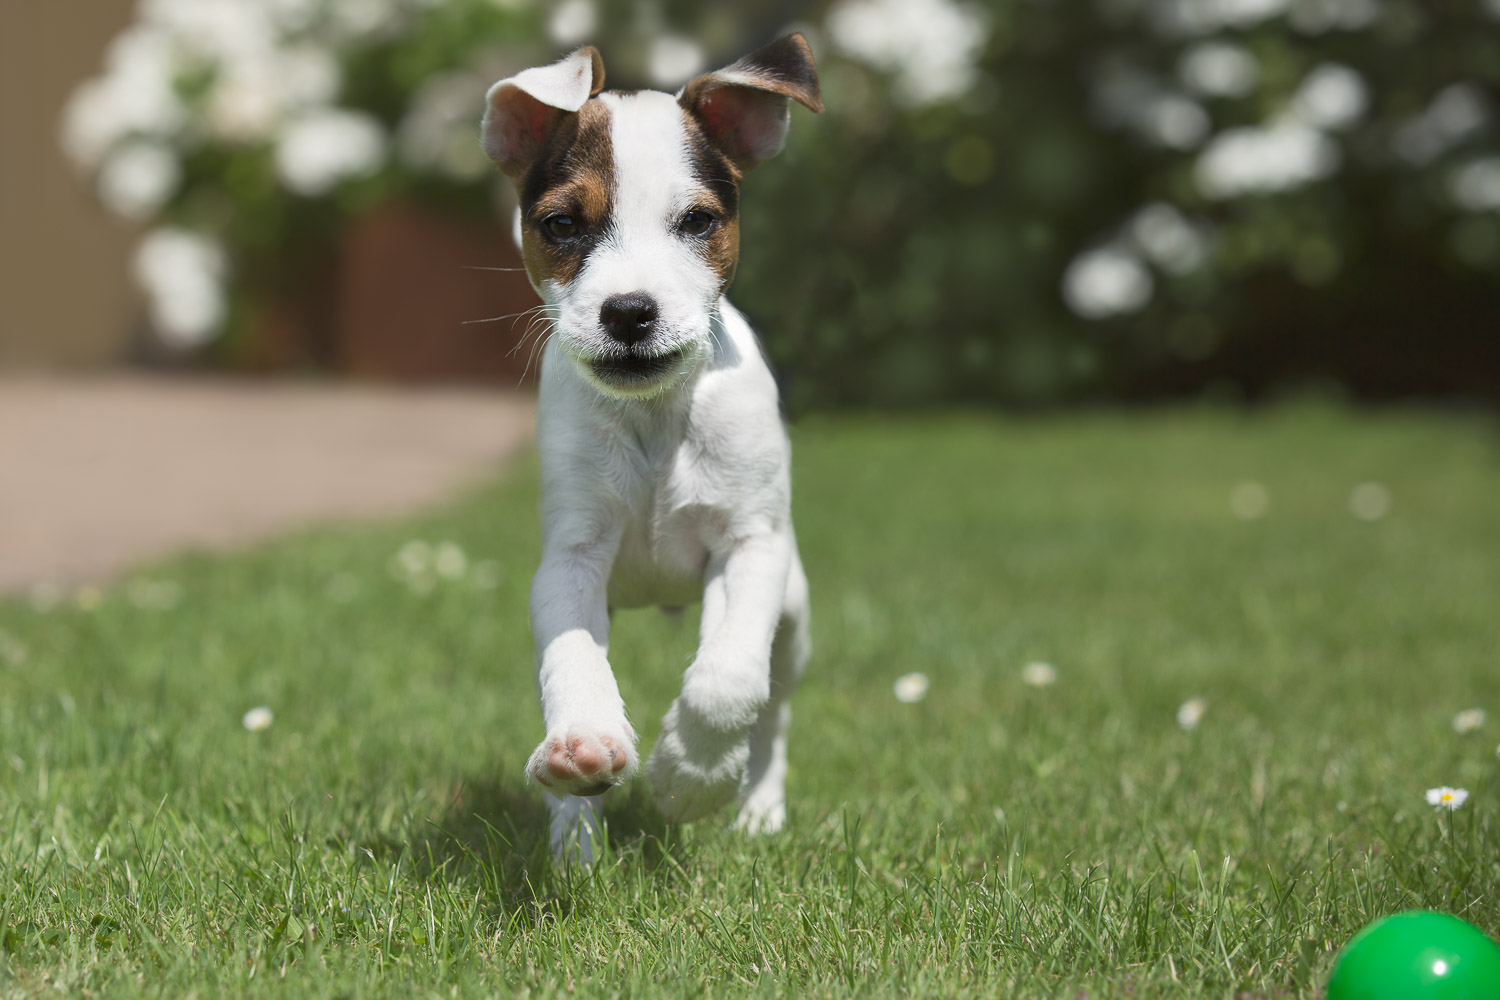 Portrait of a Jack Parson Russel Terrier Puppy, running on grass